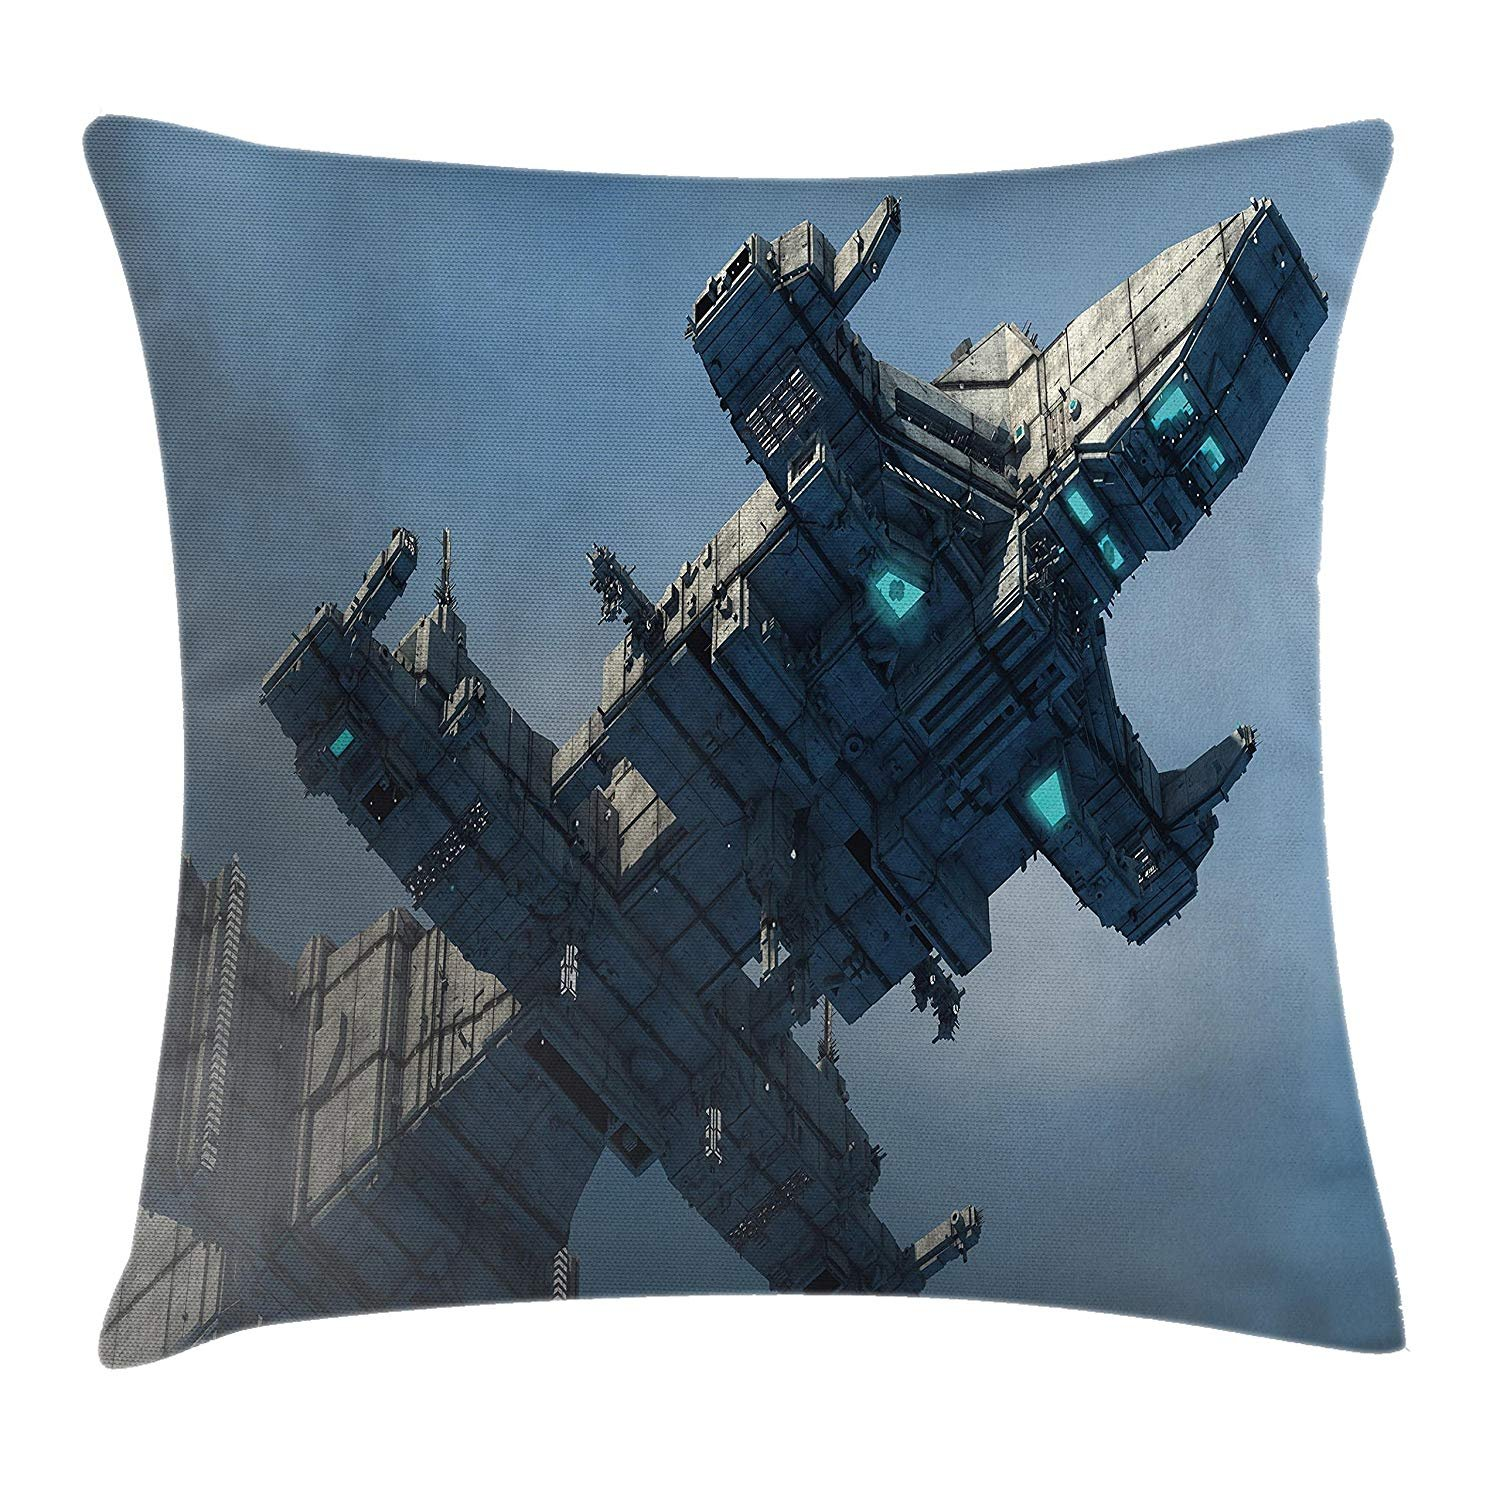 Queen Area Outer Space Decor Photo of Huge Military Ship in the Air Solar Planetary Cosmos Vehicle Square Throw Pillow Covers Cushion Case for Sofa Bedroom Car 18x18 Inch, Grey Blue